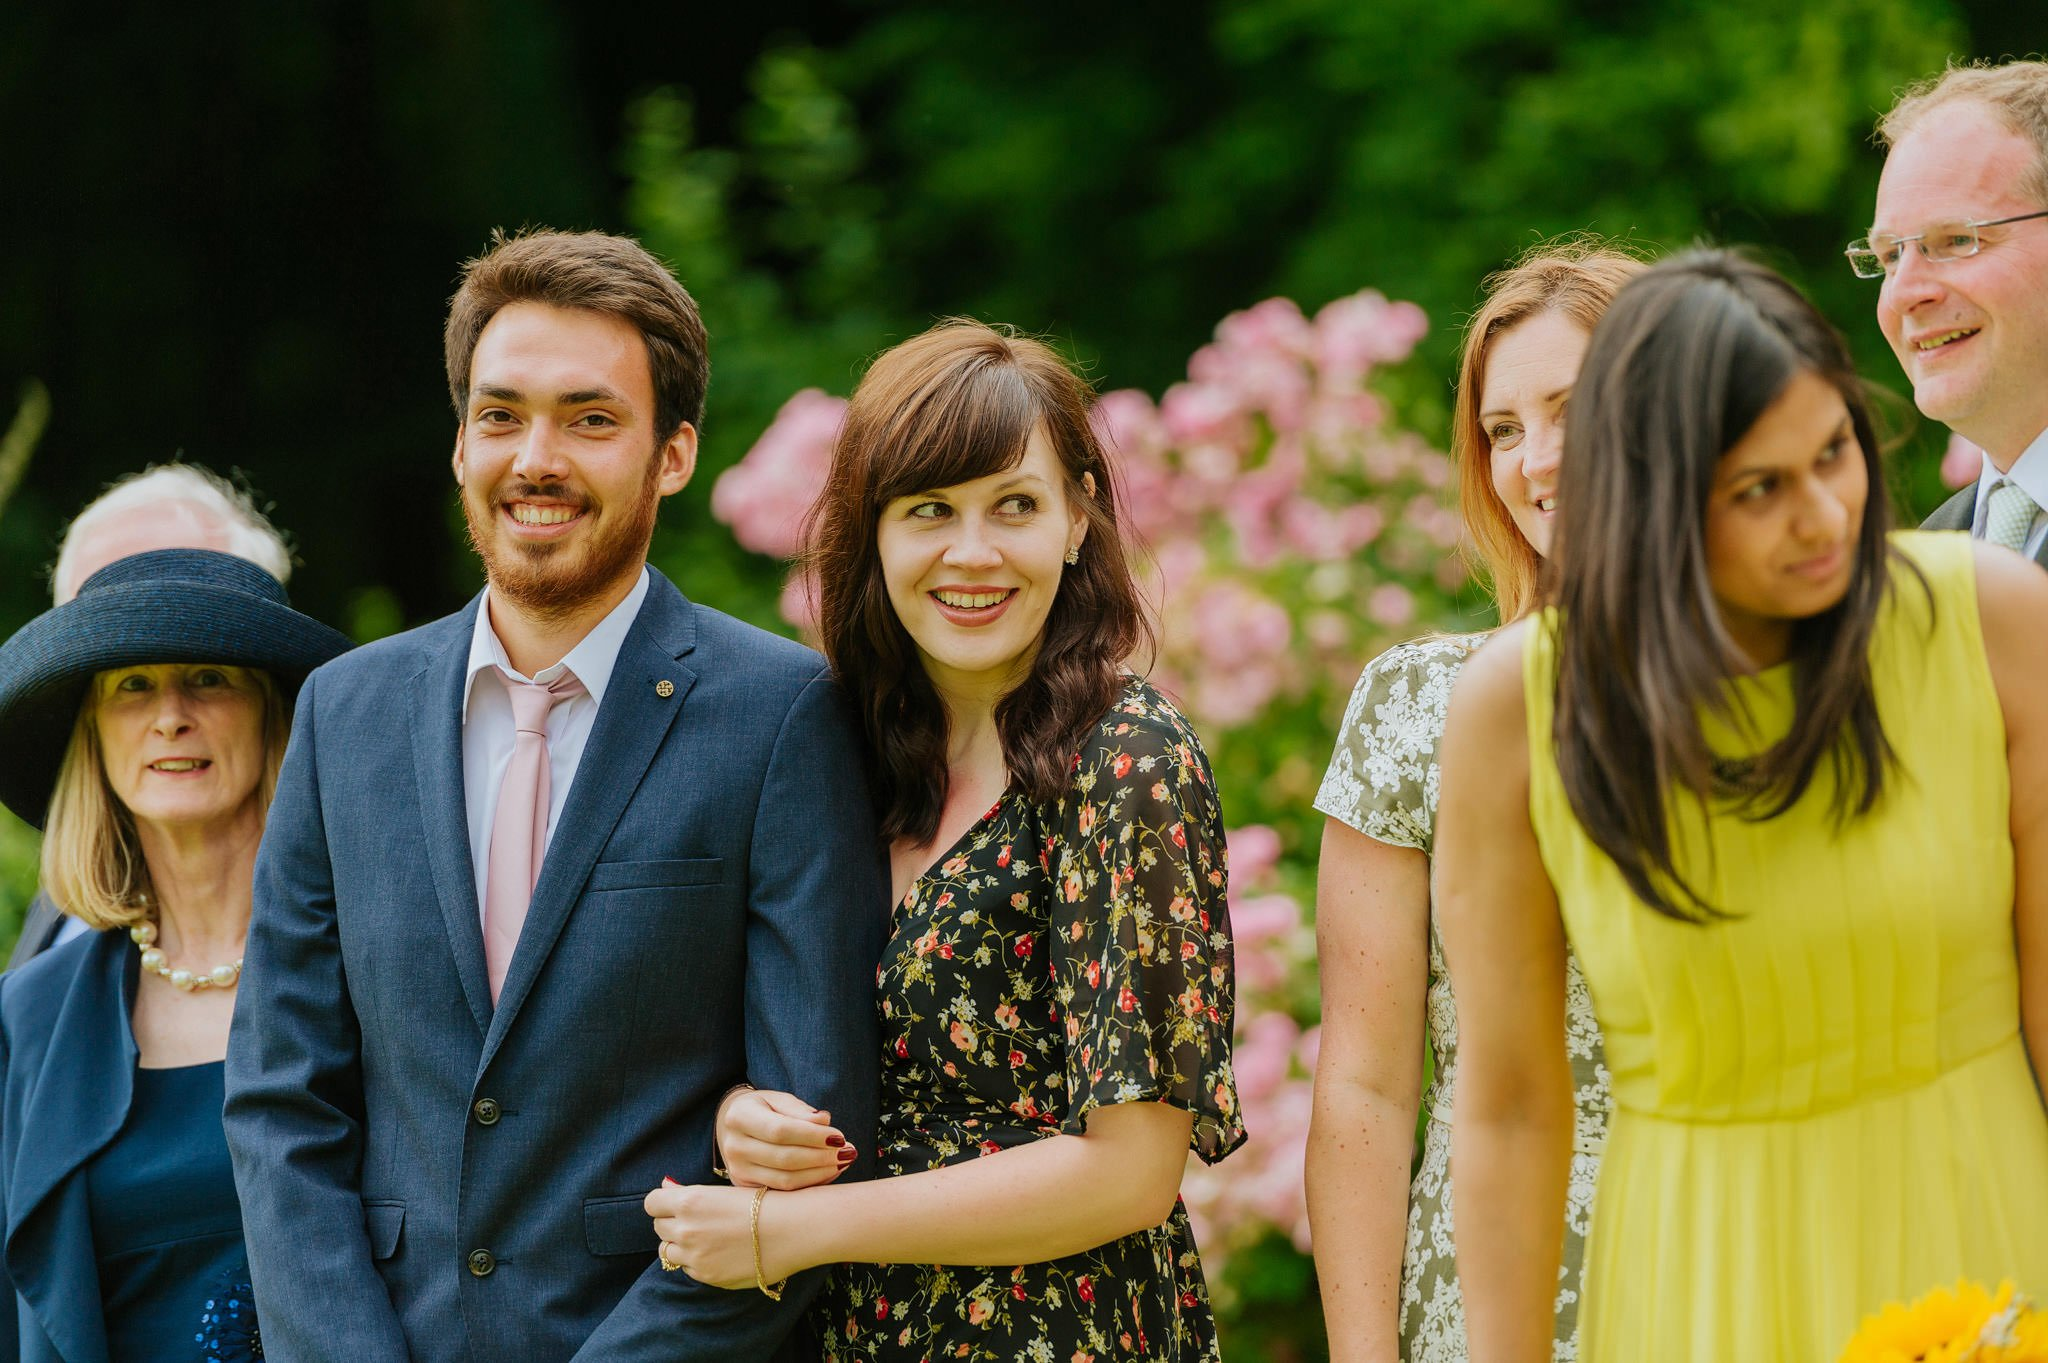 Wedding photography at Homme House in Herefordshire, West Midlands 67